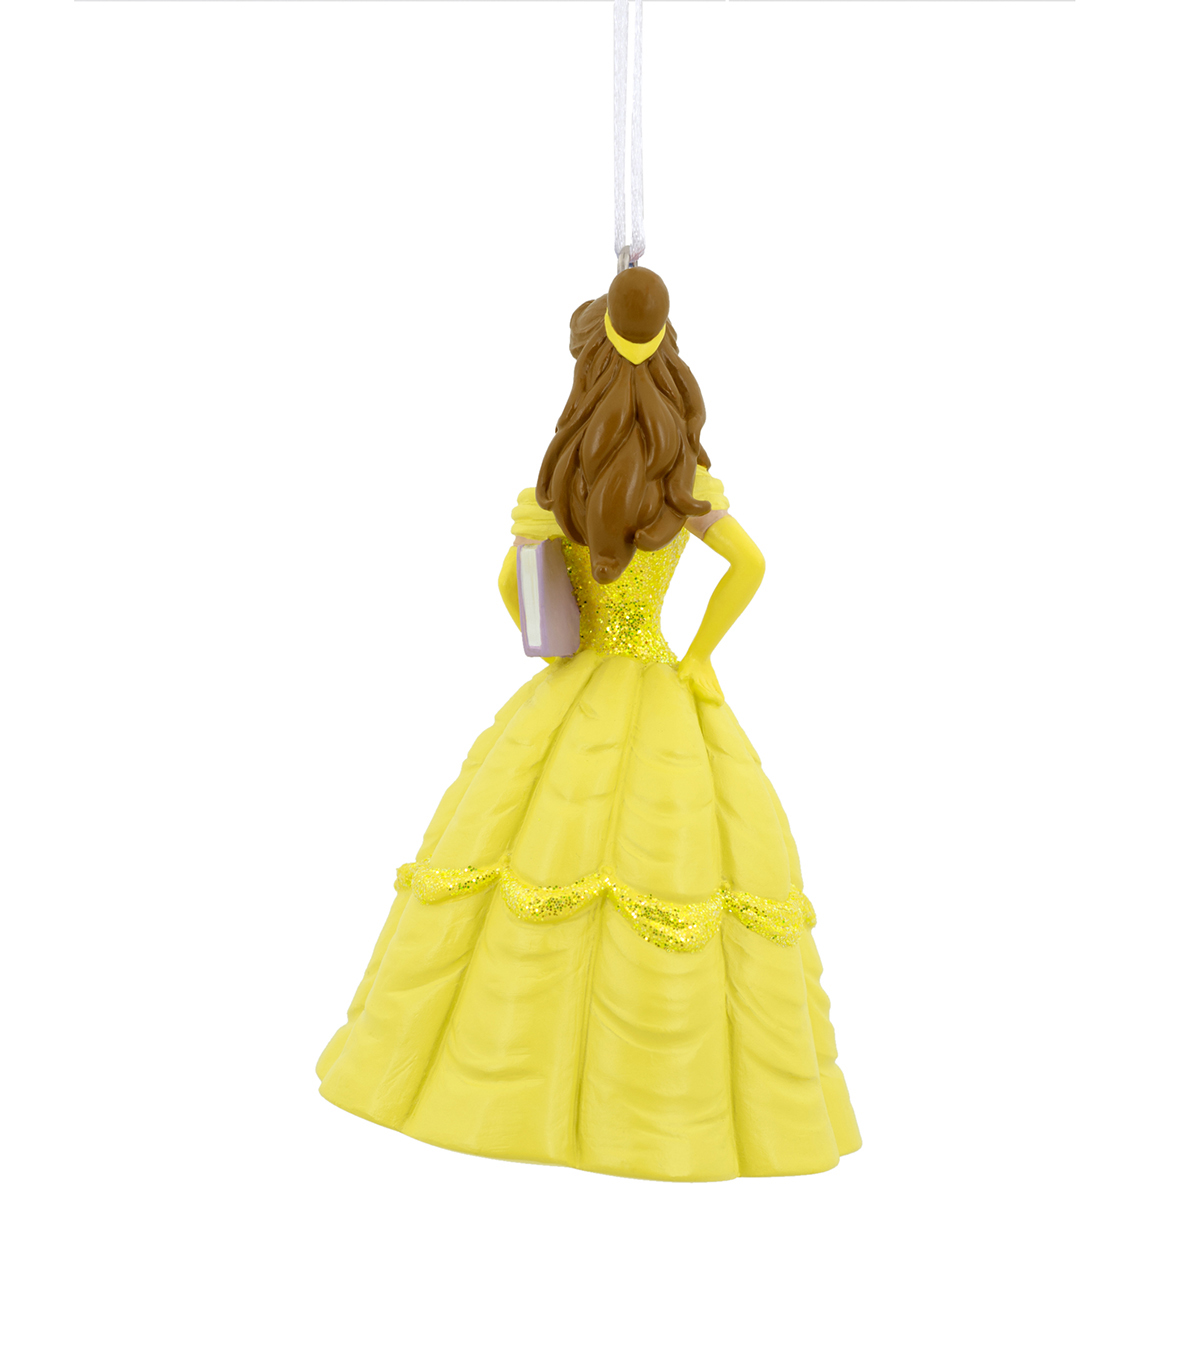 Hallmark Ornament-Resin Figural Belle